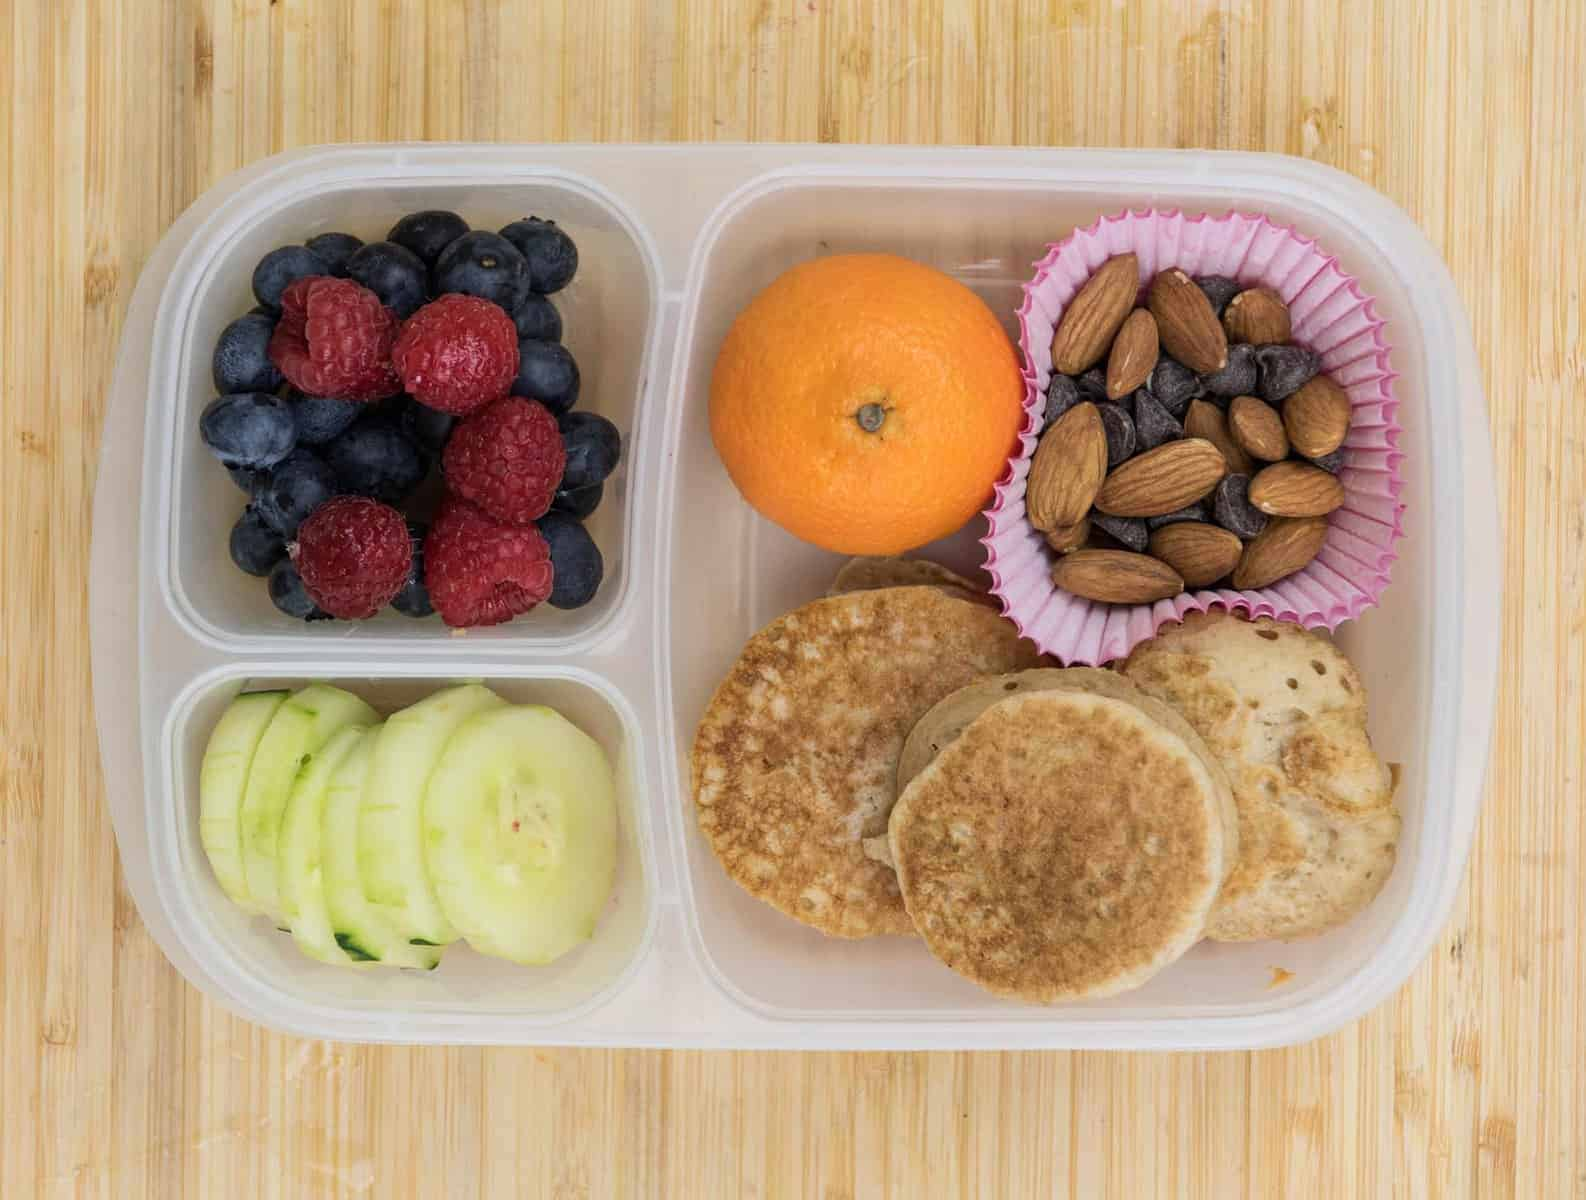 Lunch Box Ideas - Pancake Sandwich Lunch Box